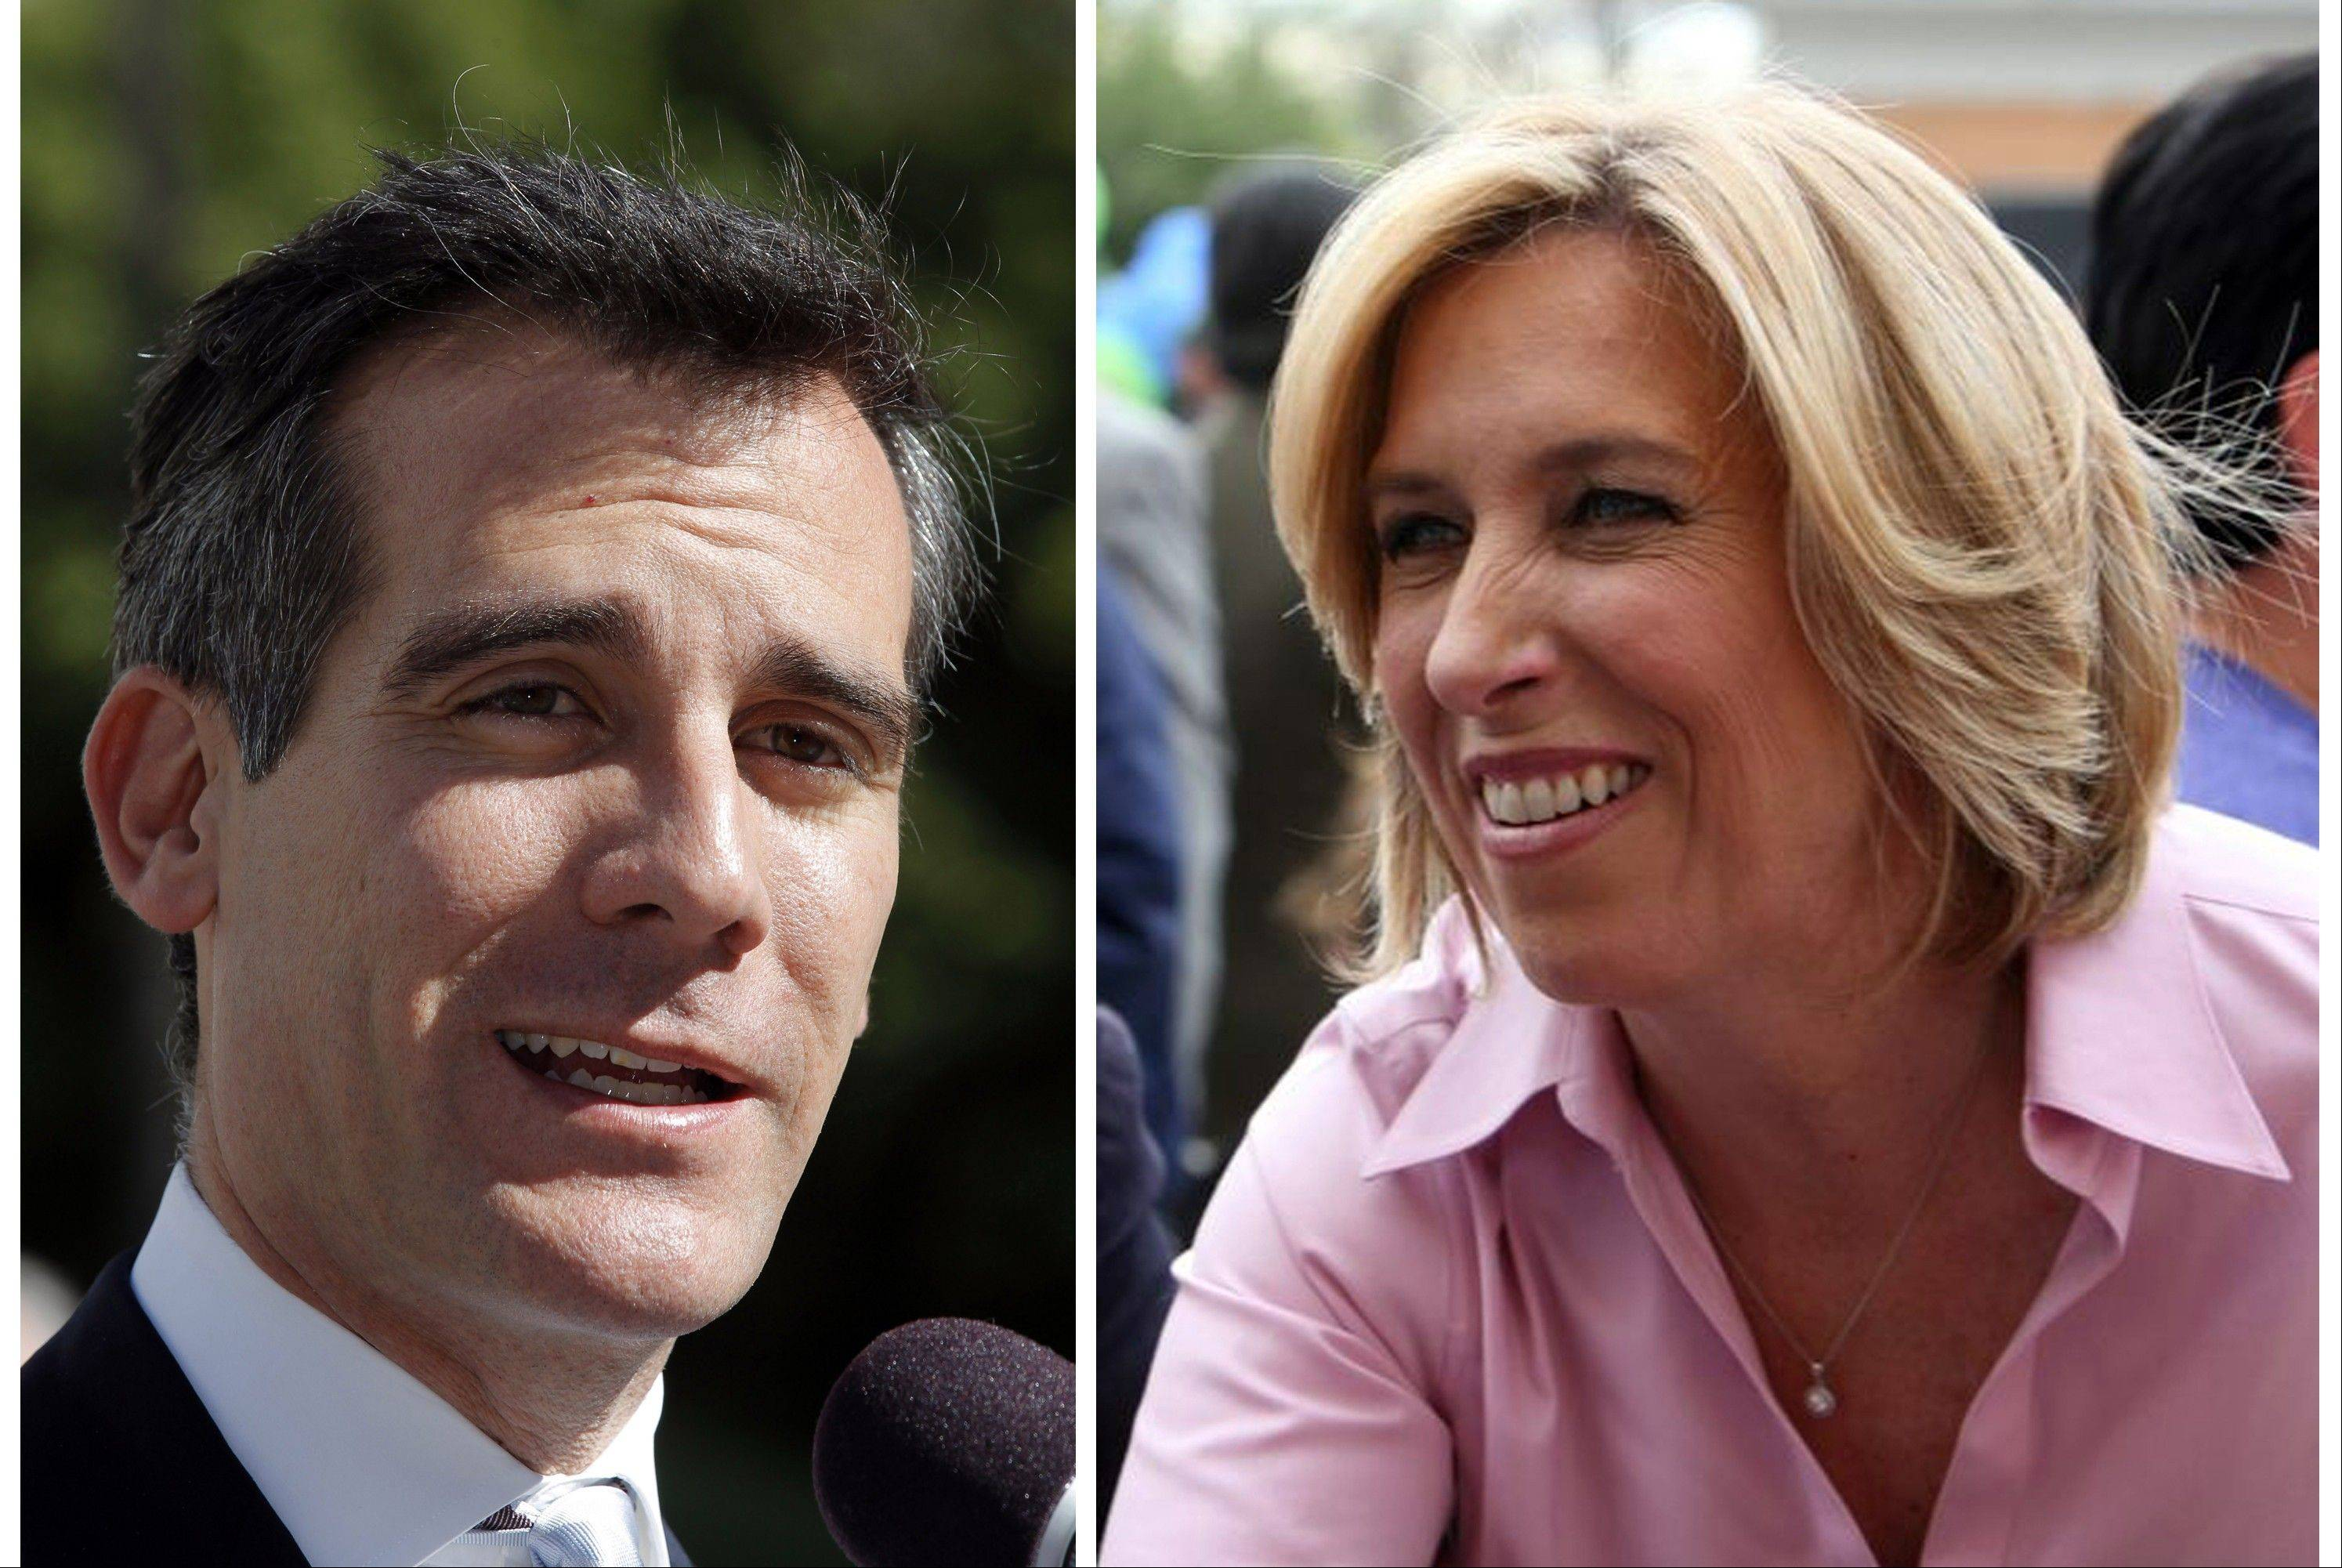 The likely outcome in the heavily Democratic city will send two City Hall regulars, Eric Garcetti, 42, and Wendy Greuel, 51, to a May 21 runoff, since it's unlikely any candidate will clear the majority needed to win outright Tuesday March 5, 2013.